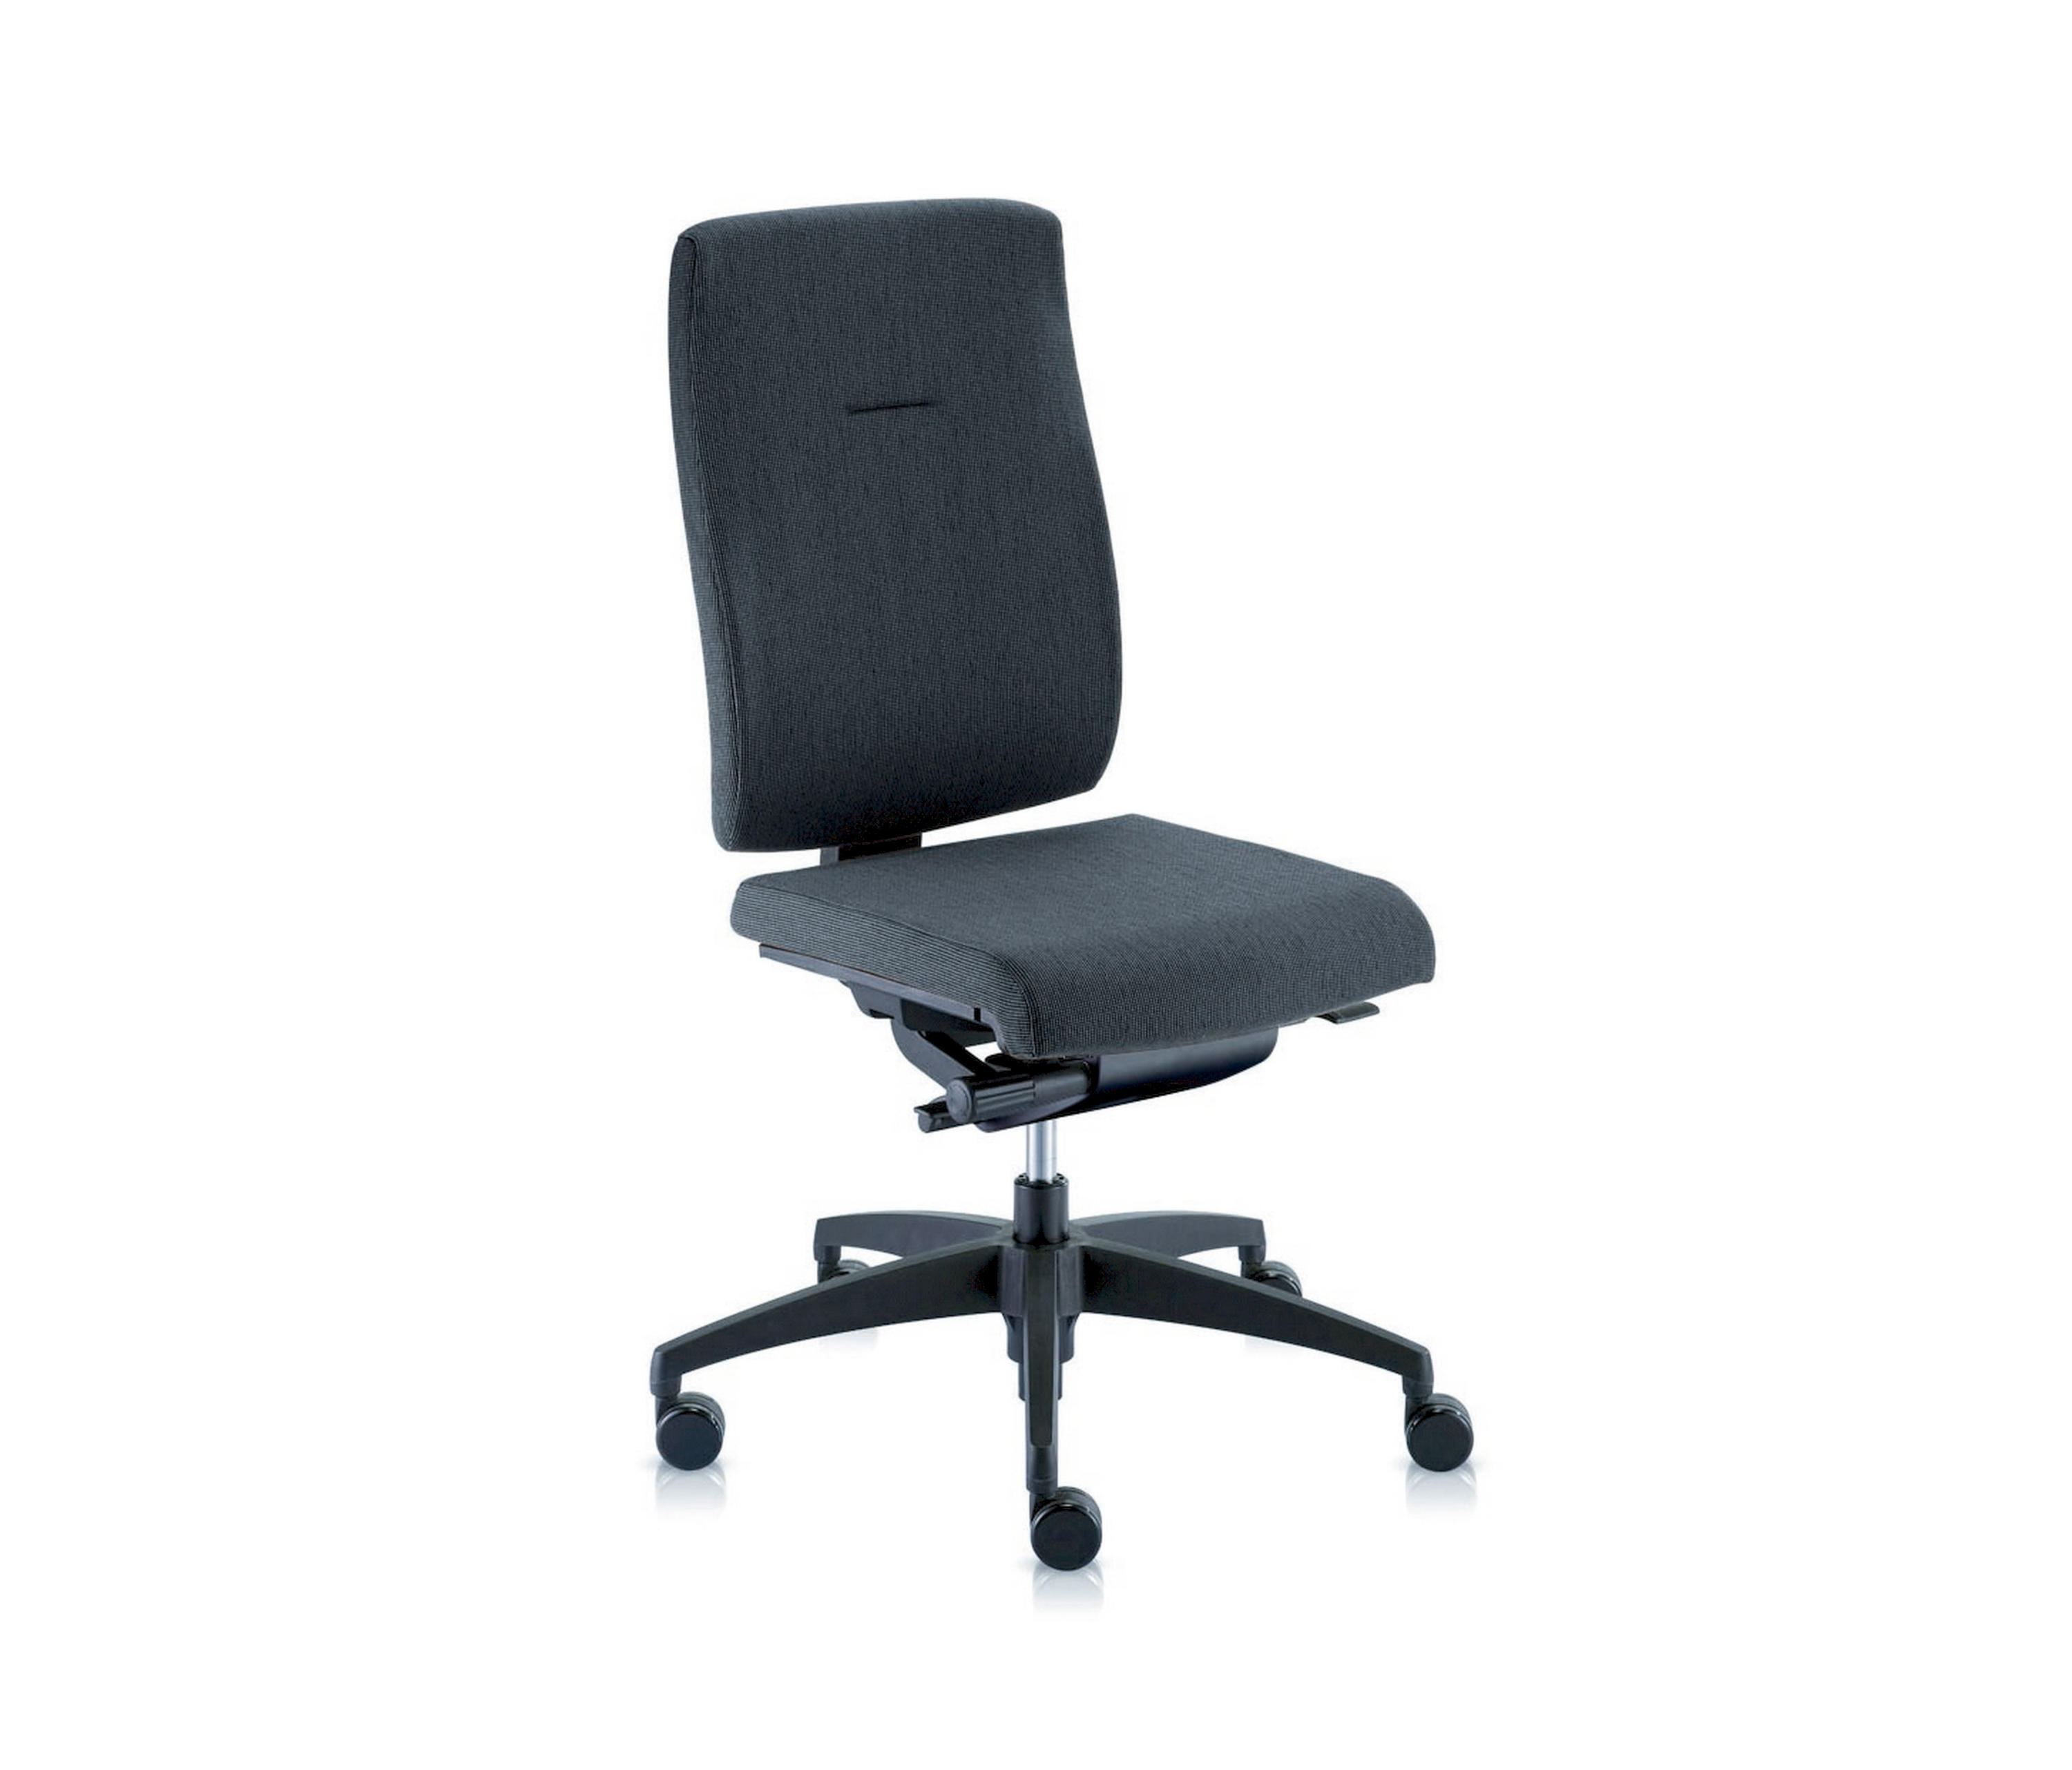 SITAGPOINT SWIVEL CHAIR - Task chairs from Sitag | Architonic